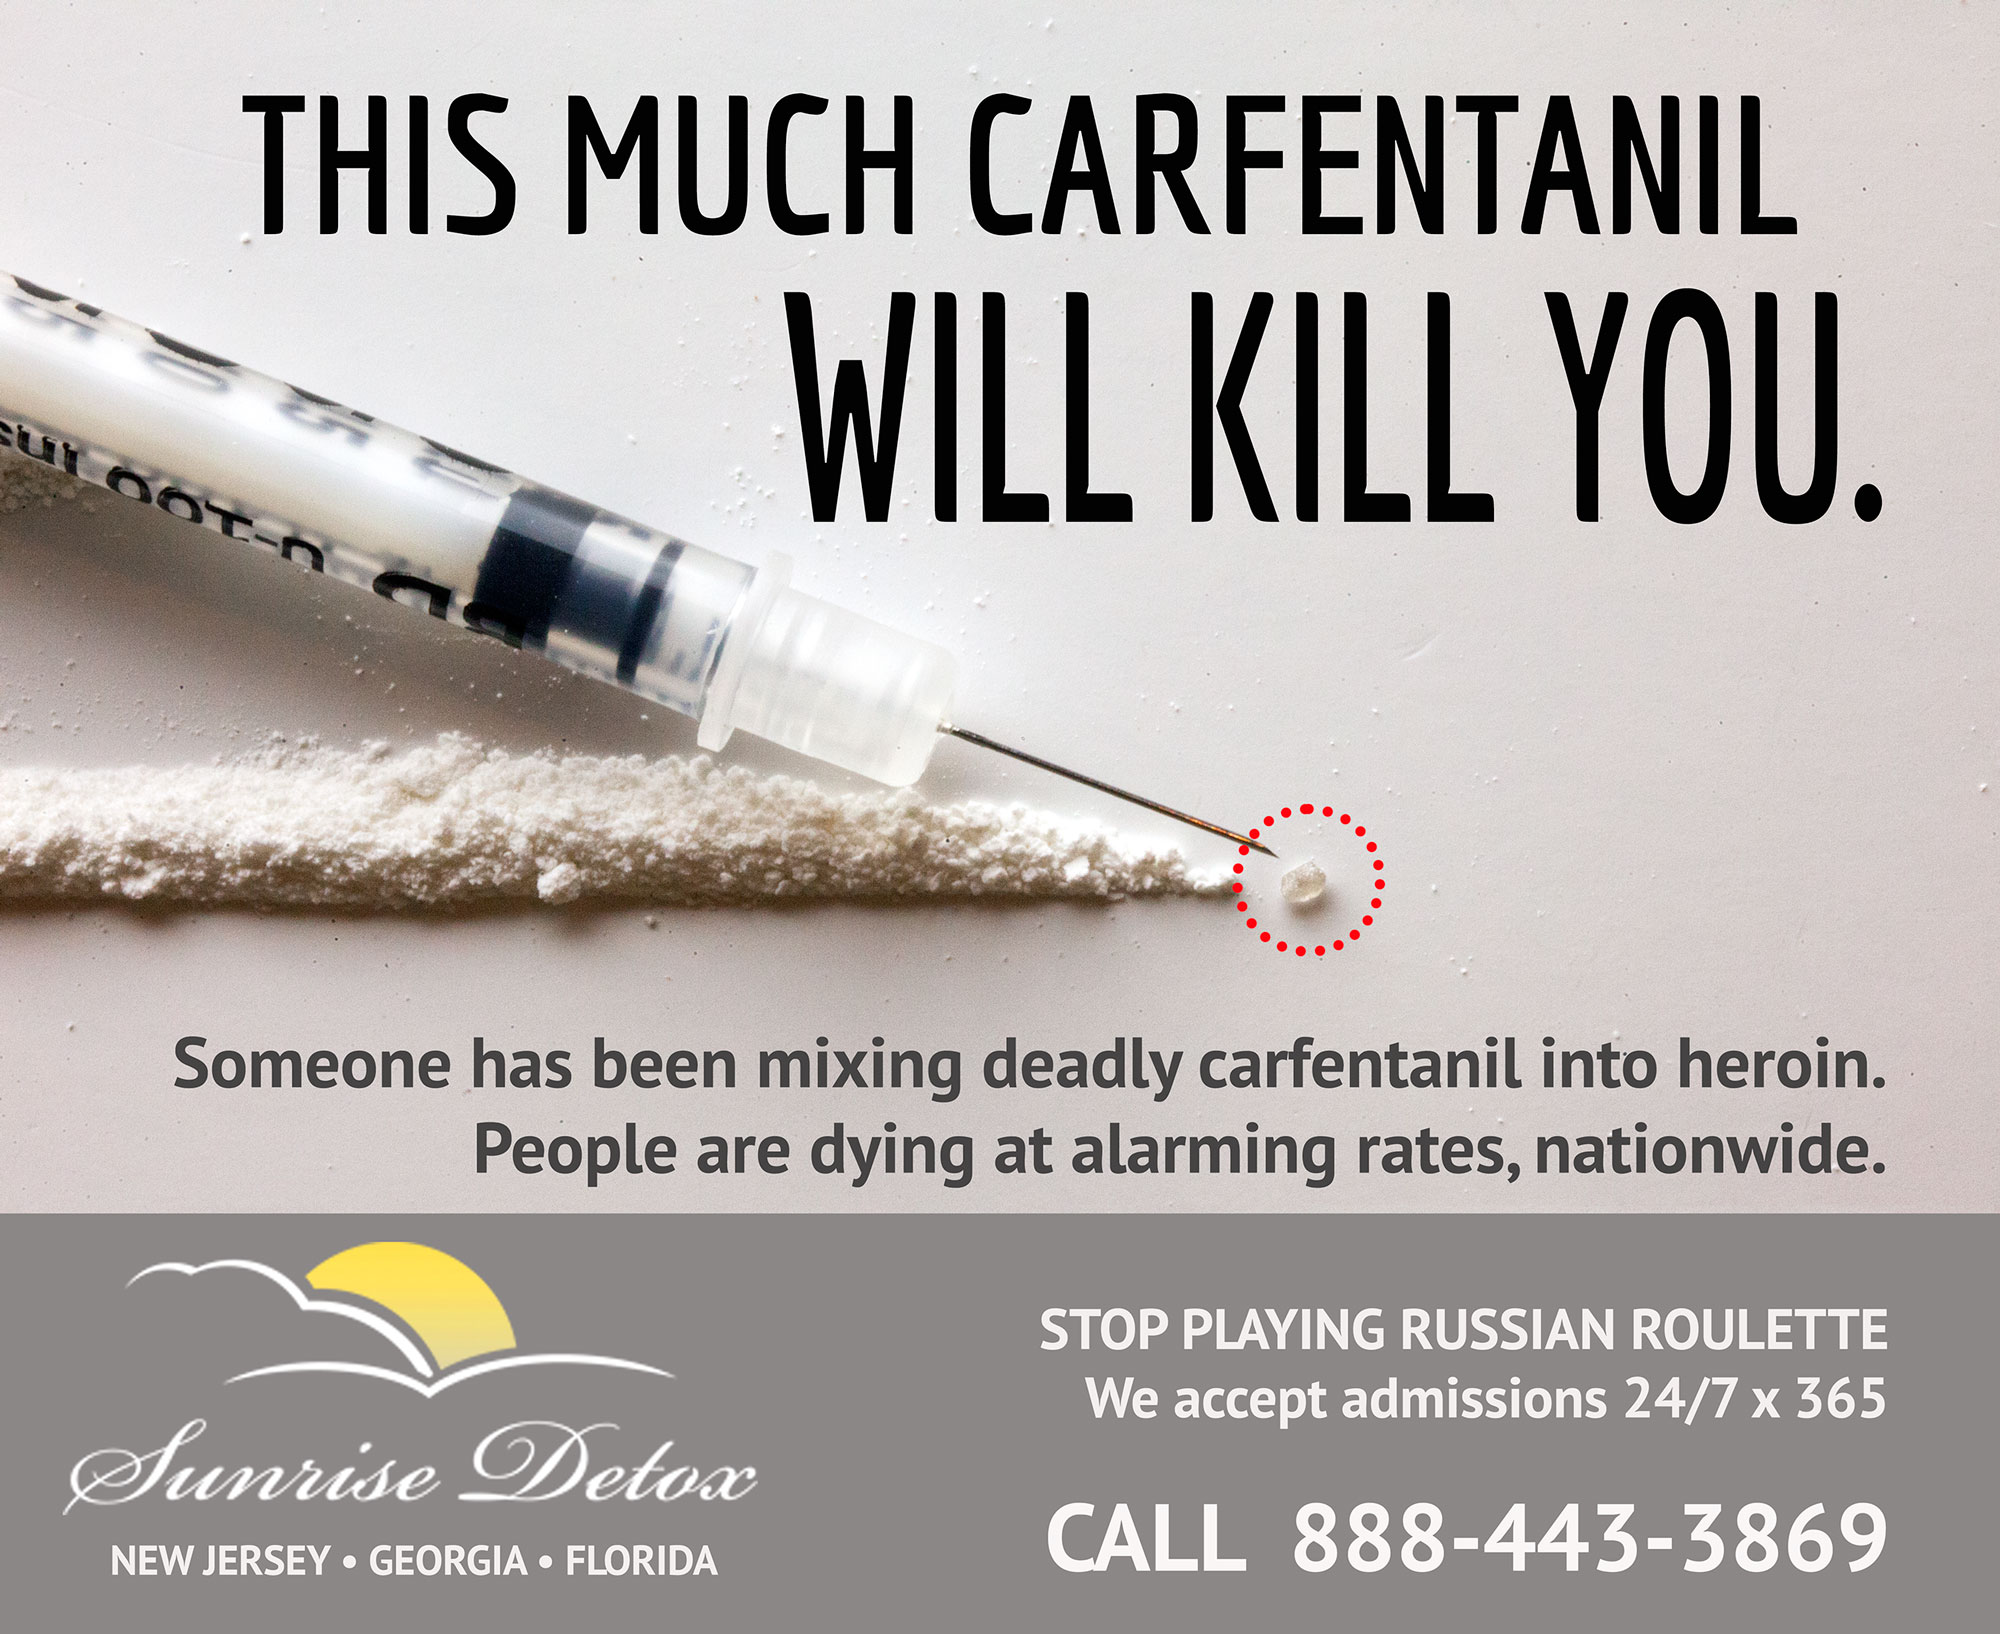 A dose of carfentanil the sized of a single grain of sand can kill a full grown adult male human.